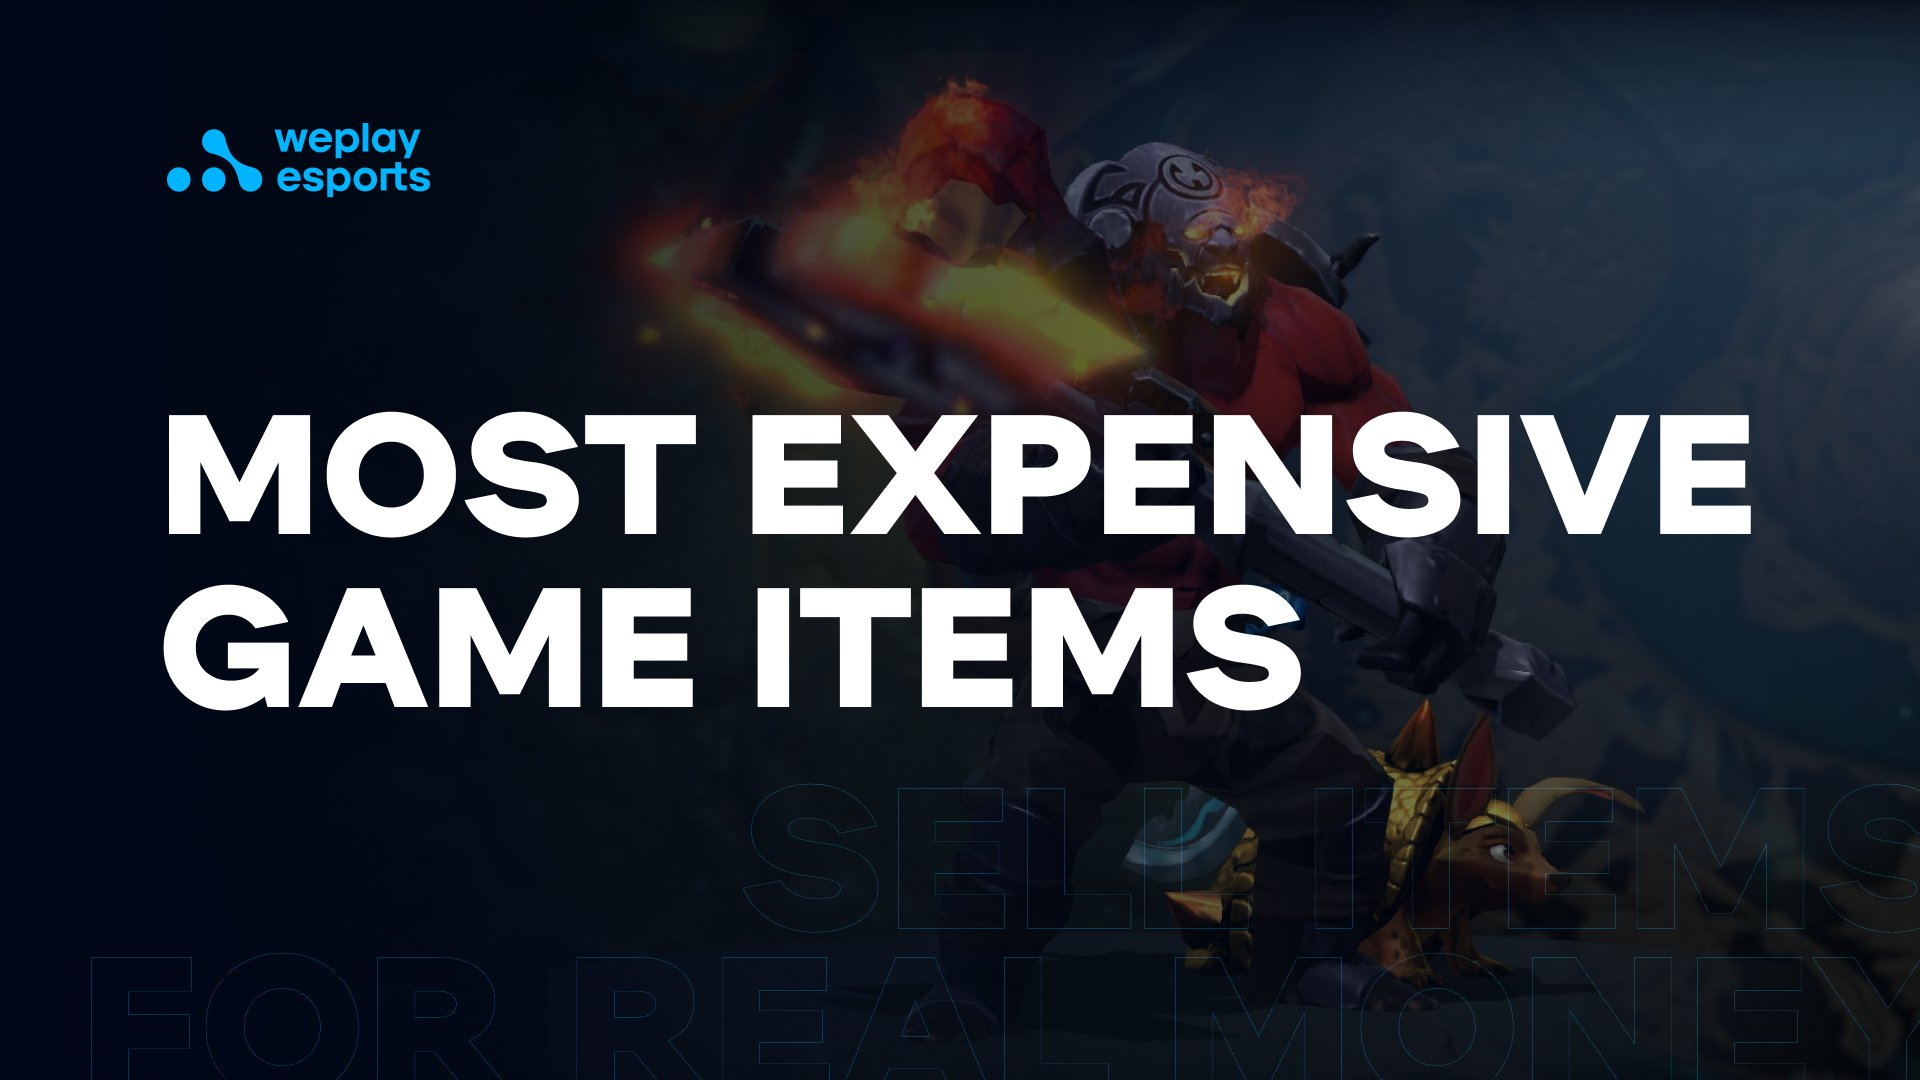 Most Expensive Game Items